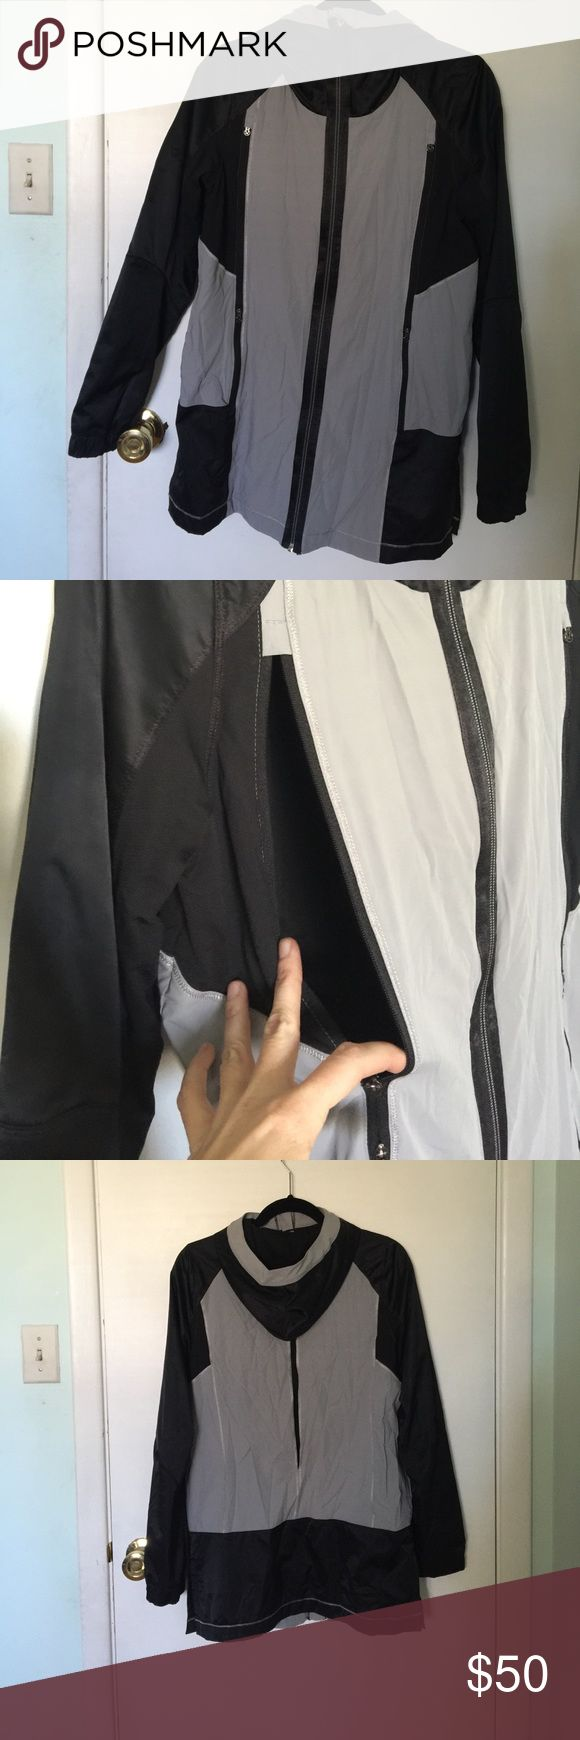 """Lululemon Right Round jacket 21"""" from armpit to bottom. According to Lululemon:  Why we made this: 1. A cozy, loose-fitting long-length jacket to throw on after you clip out 2. Stretch Glyde fabric is water-resistant and finished with DWR (Durable Water Repellant) to help repel the wind and rain 3. Anti-stink mesh and easy to pull zippers help you control your temperature 4. Store your cards and keys in the secure pockets 5. Lines with soft, moisture-wicking COOLMAX  This also has a phone…"""